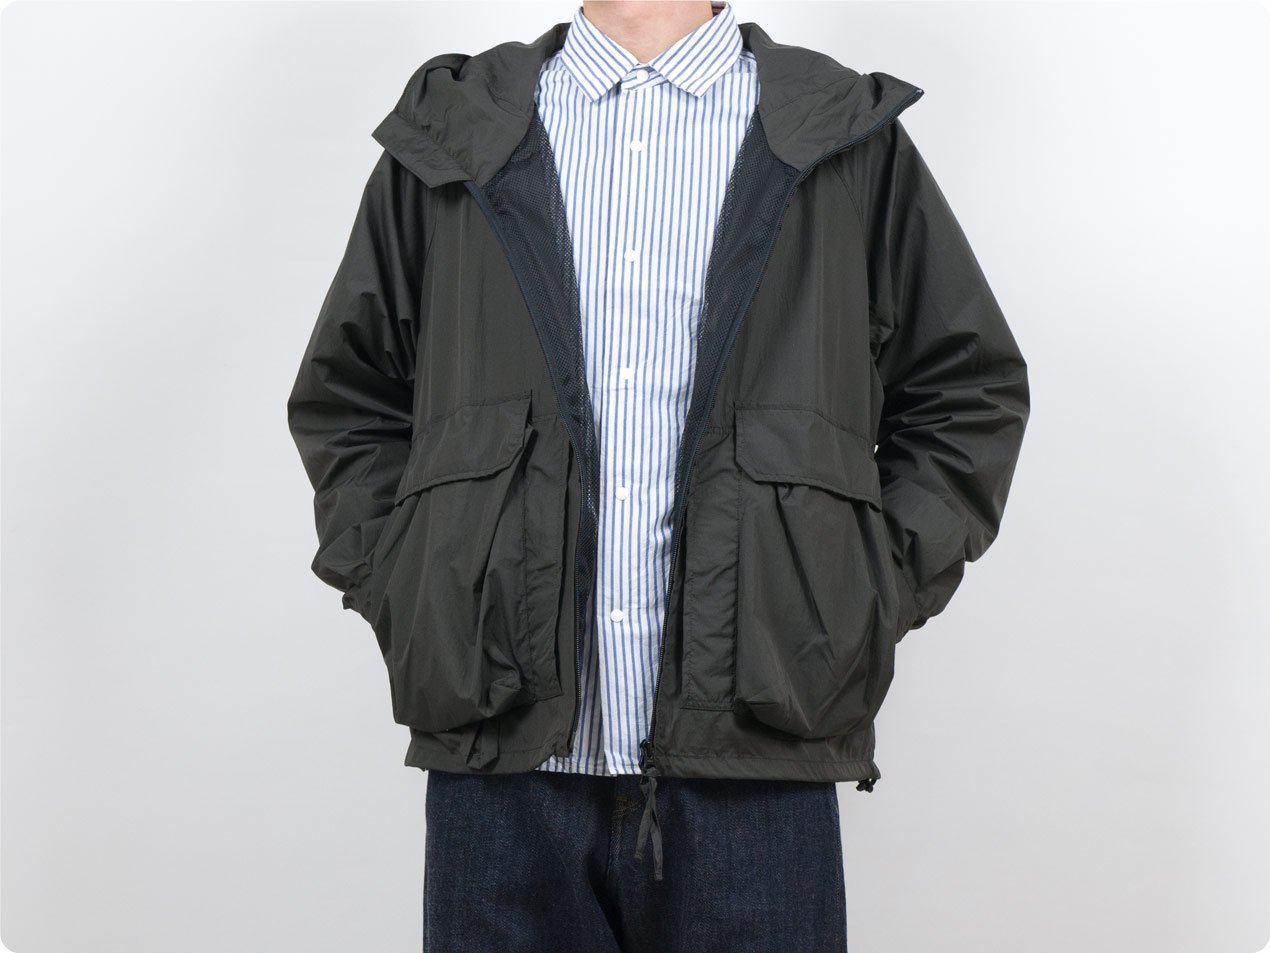 ENDS and MEANS Fishing Jacket African Black